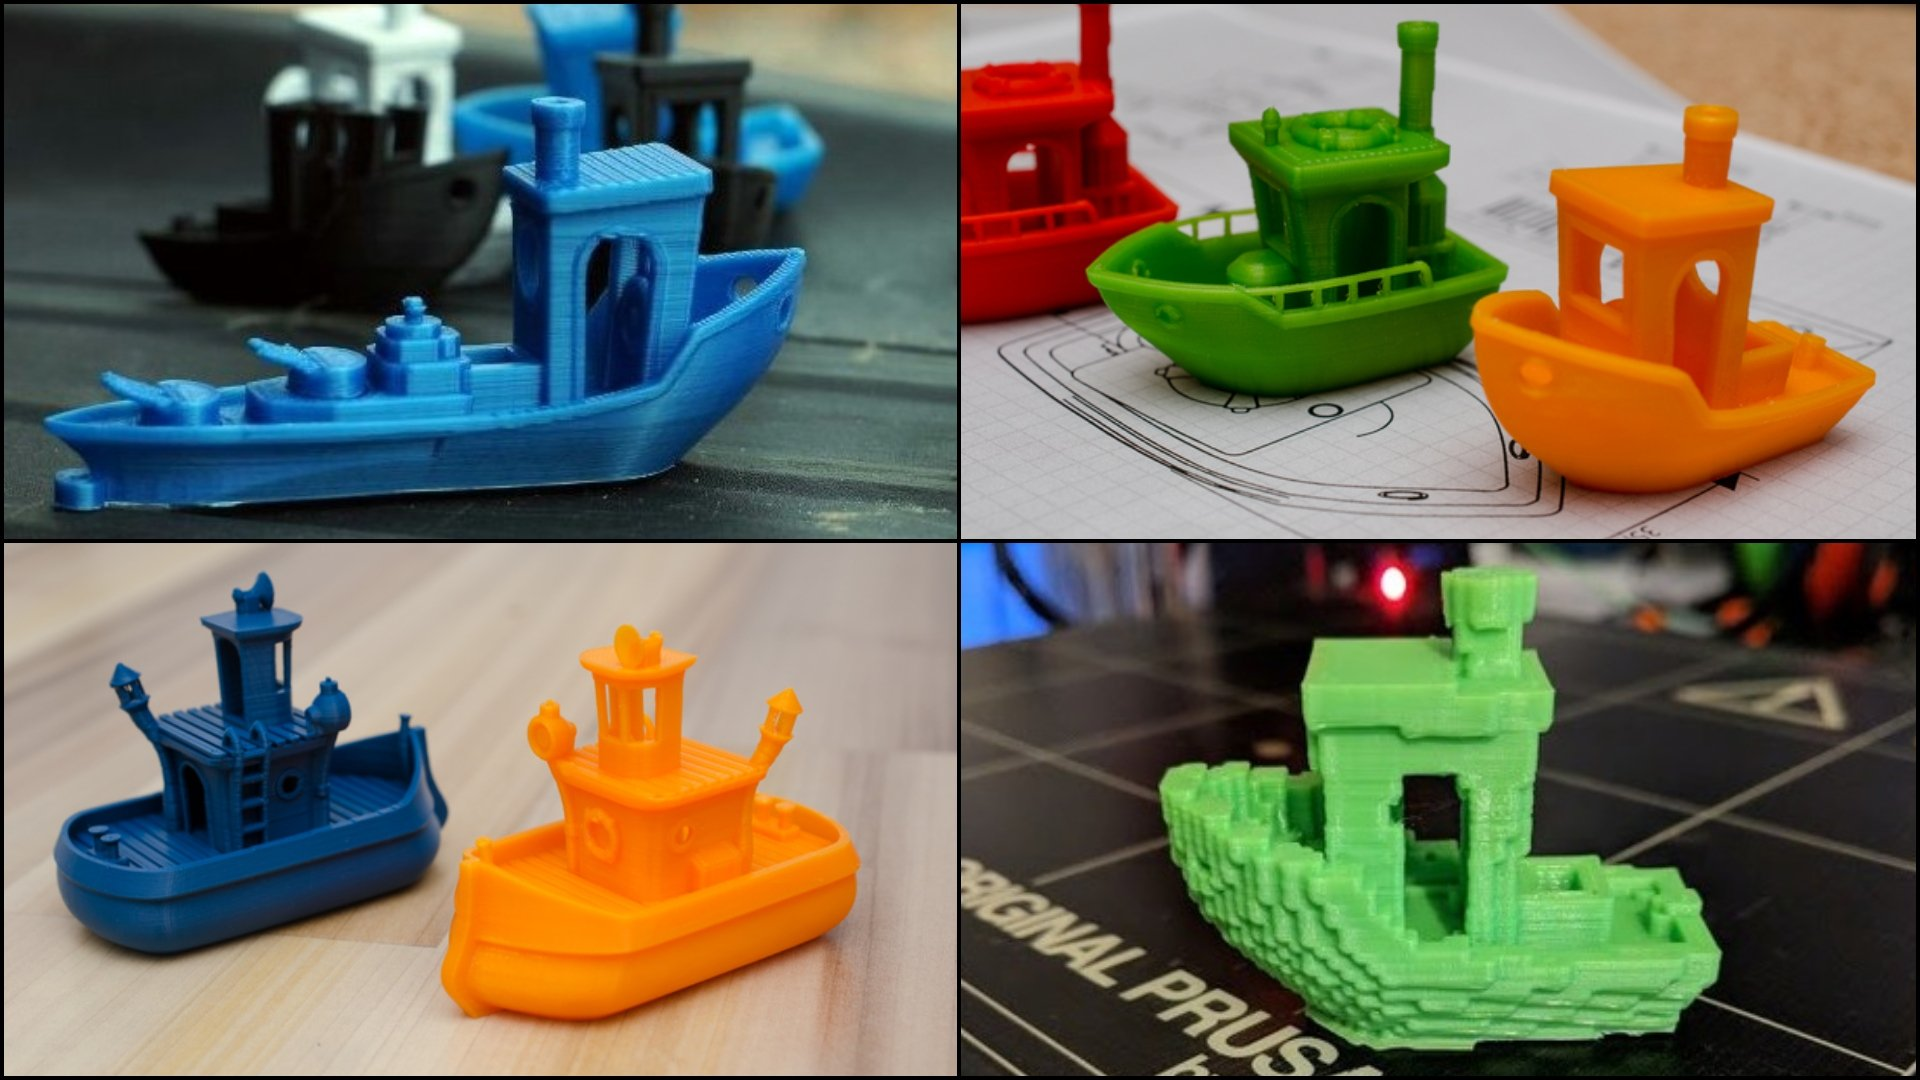 10 Cool 3DBenchy Variations - 3D Print Your Own Fleet! | All3DP